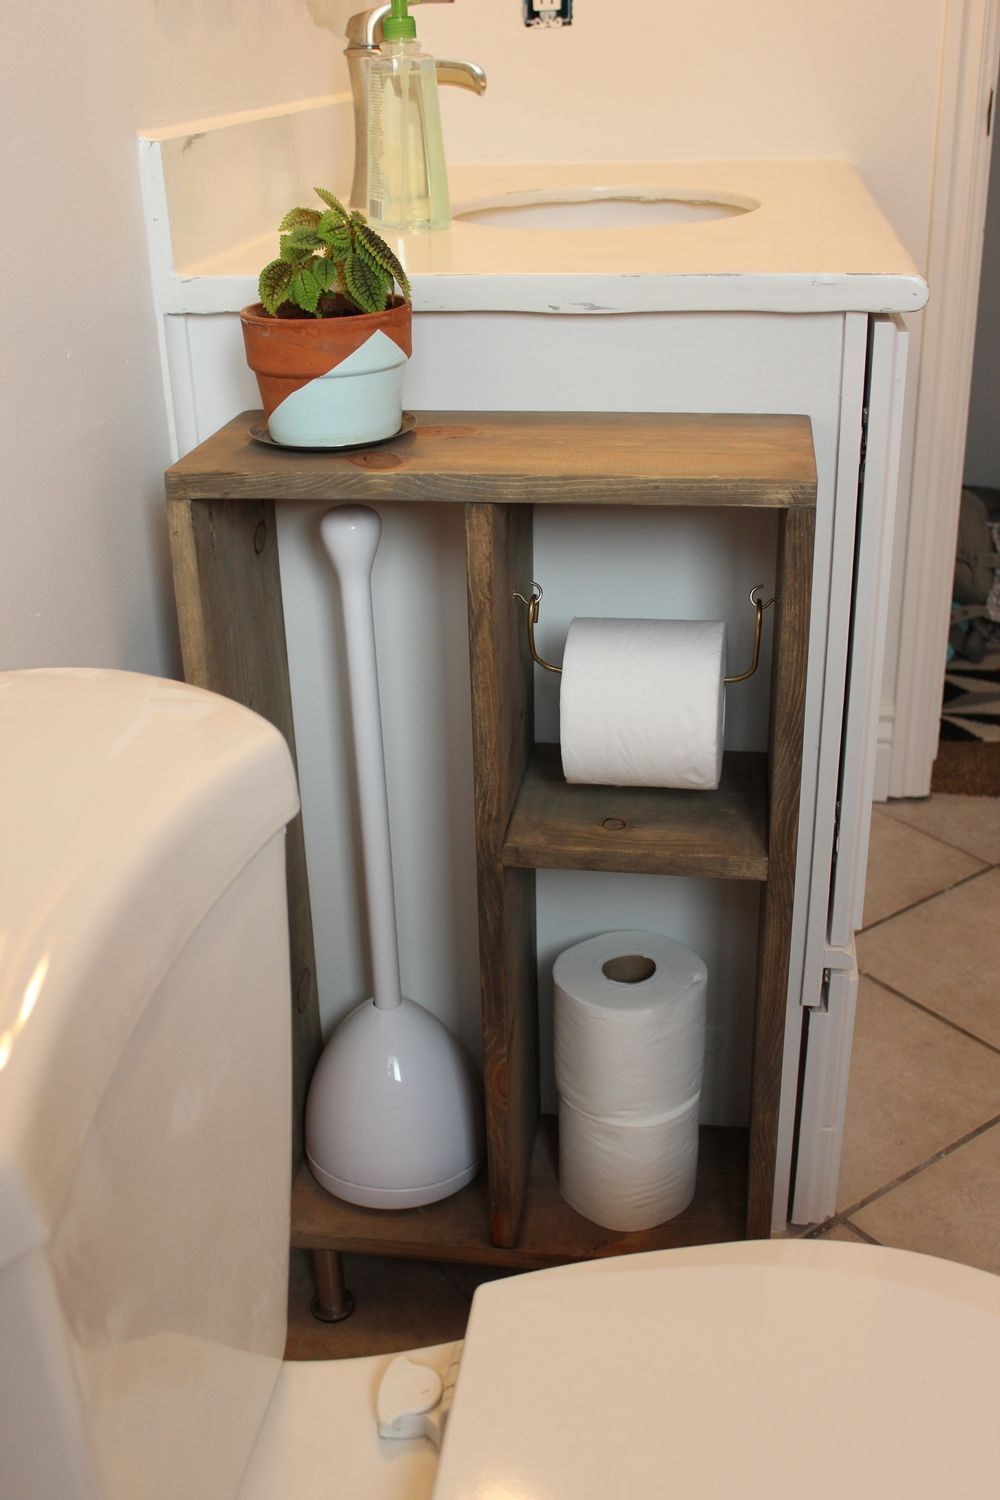 Simple and sleek tp holder and storage